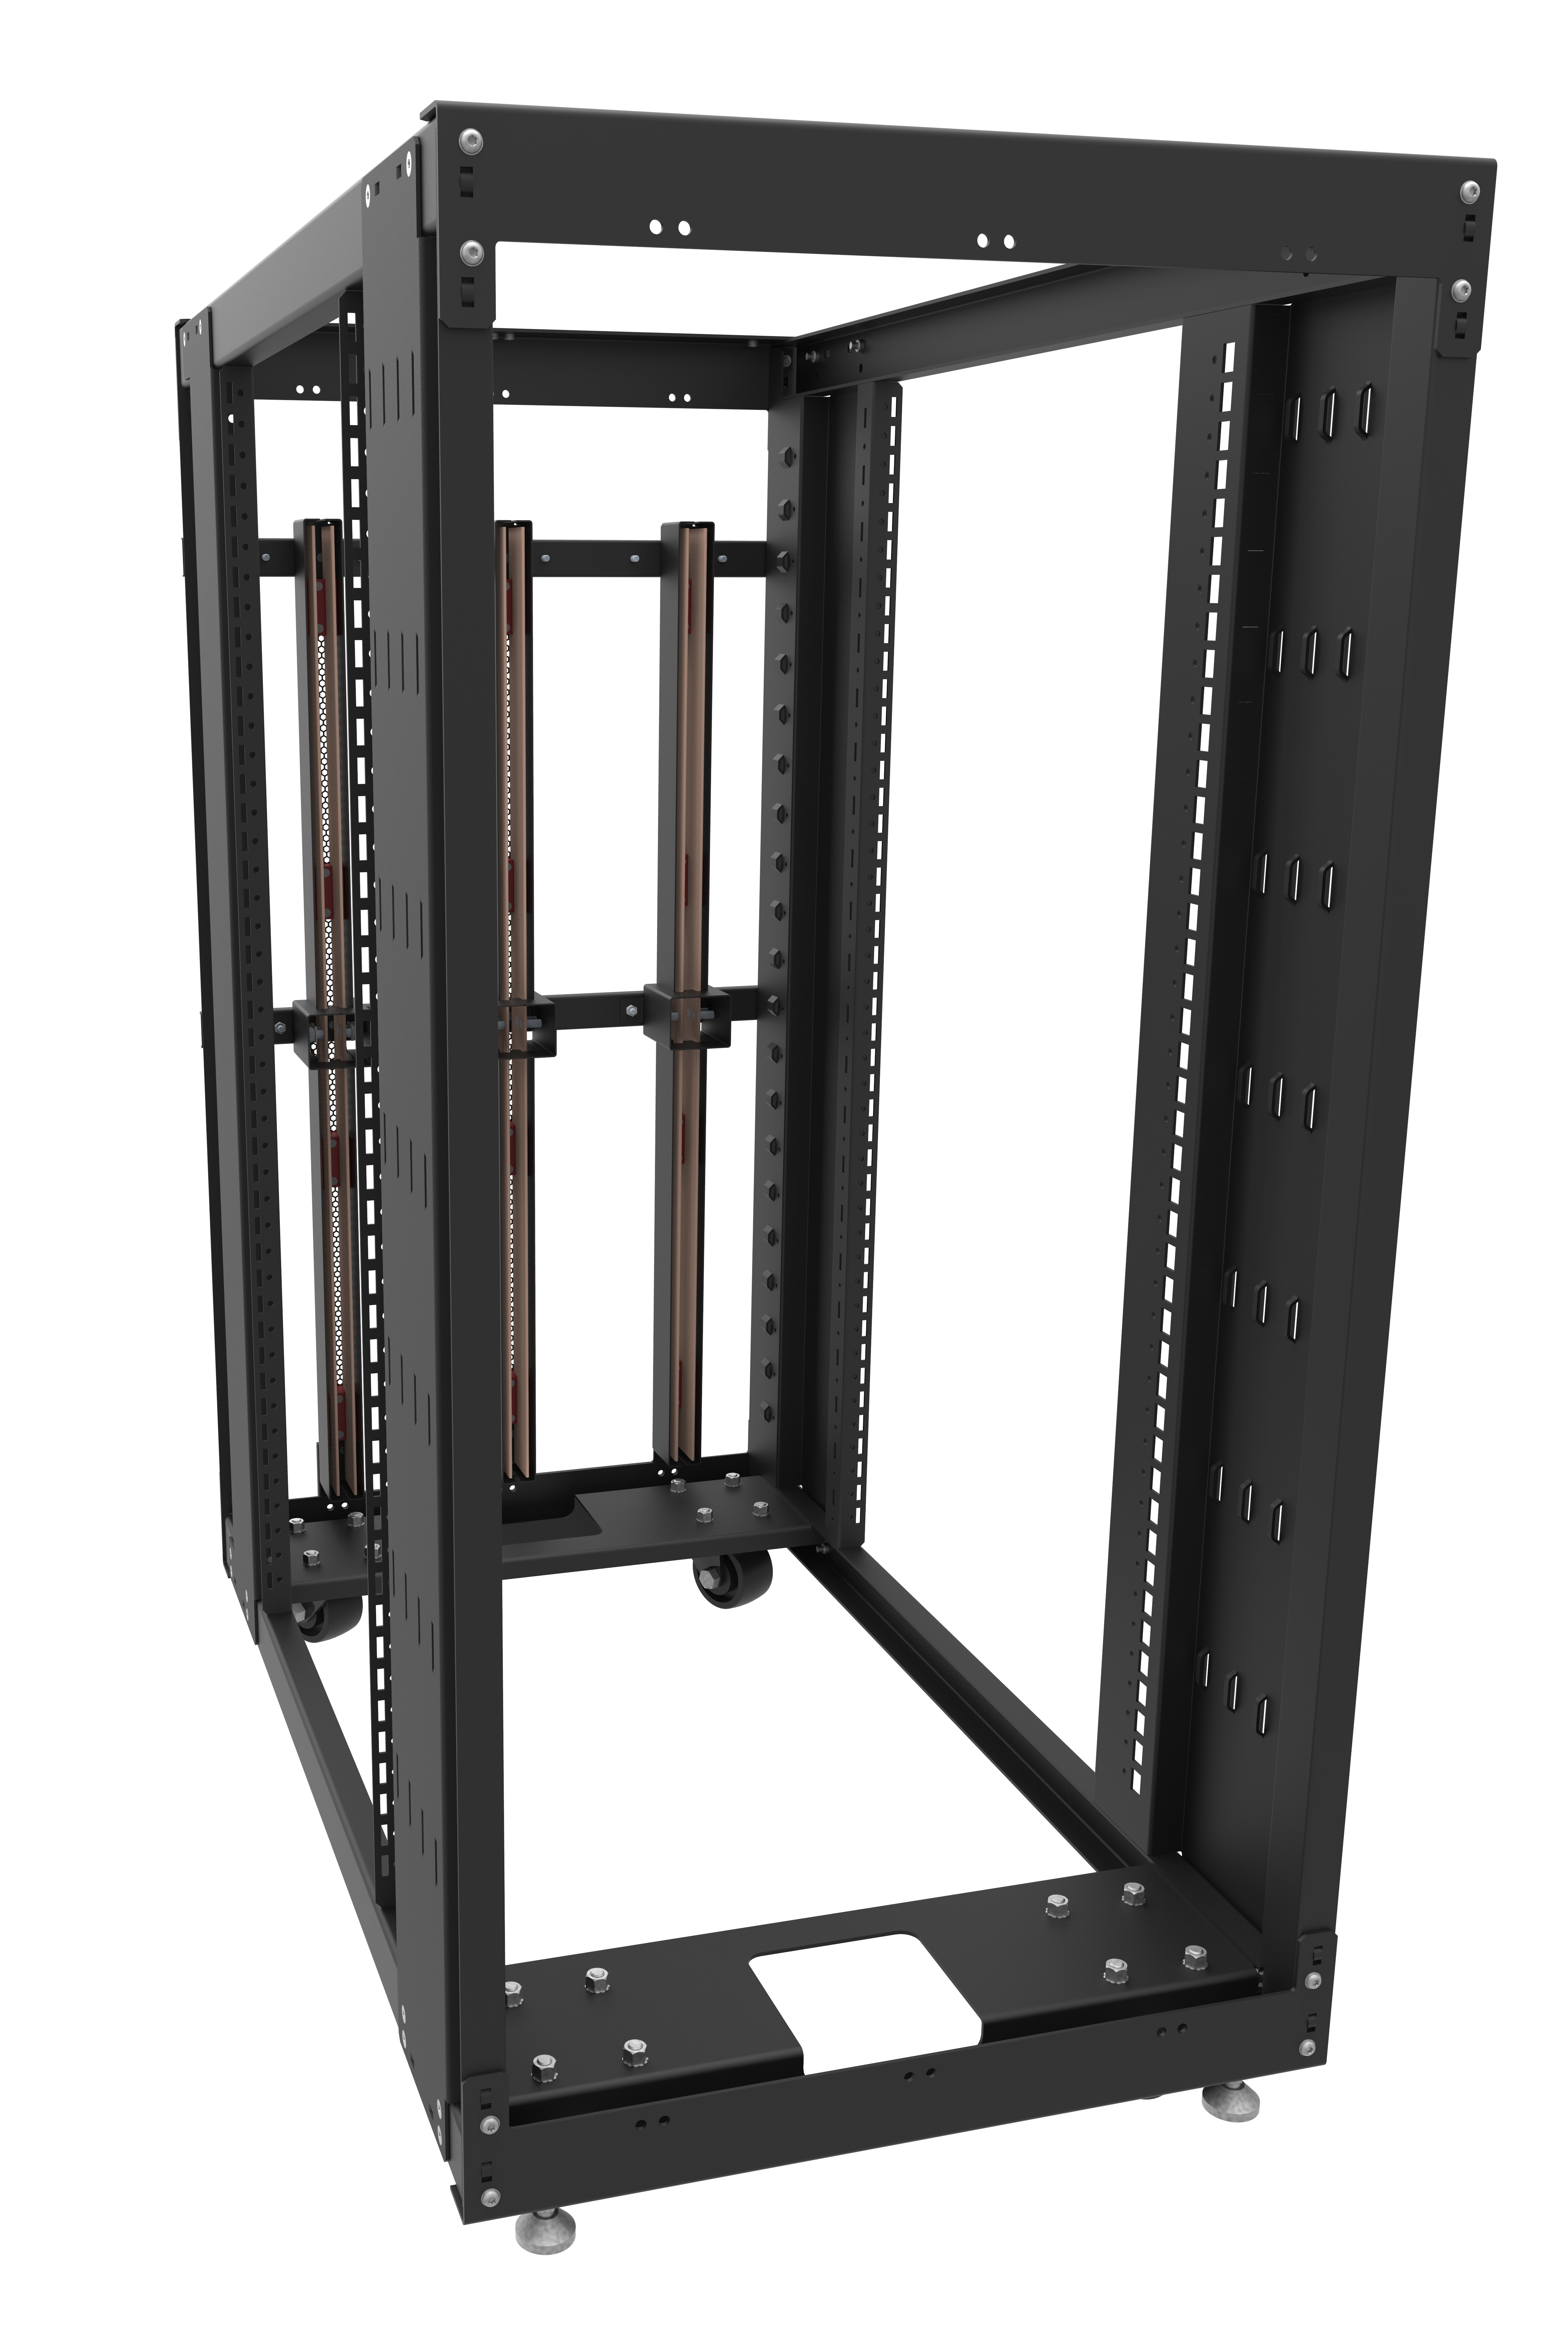 smart equipment rack smarthomeequipmentrackenclosure home enclosure